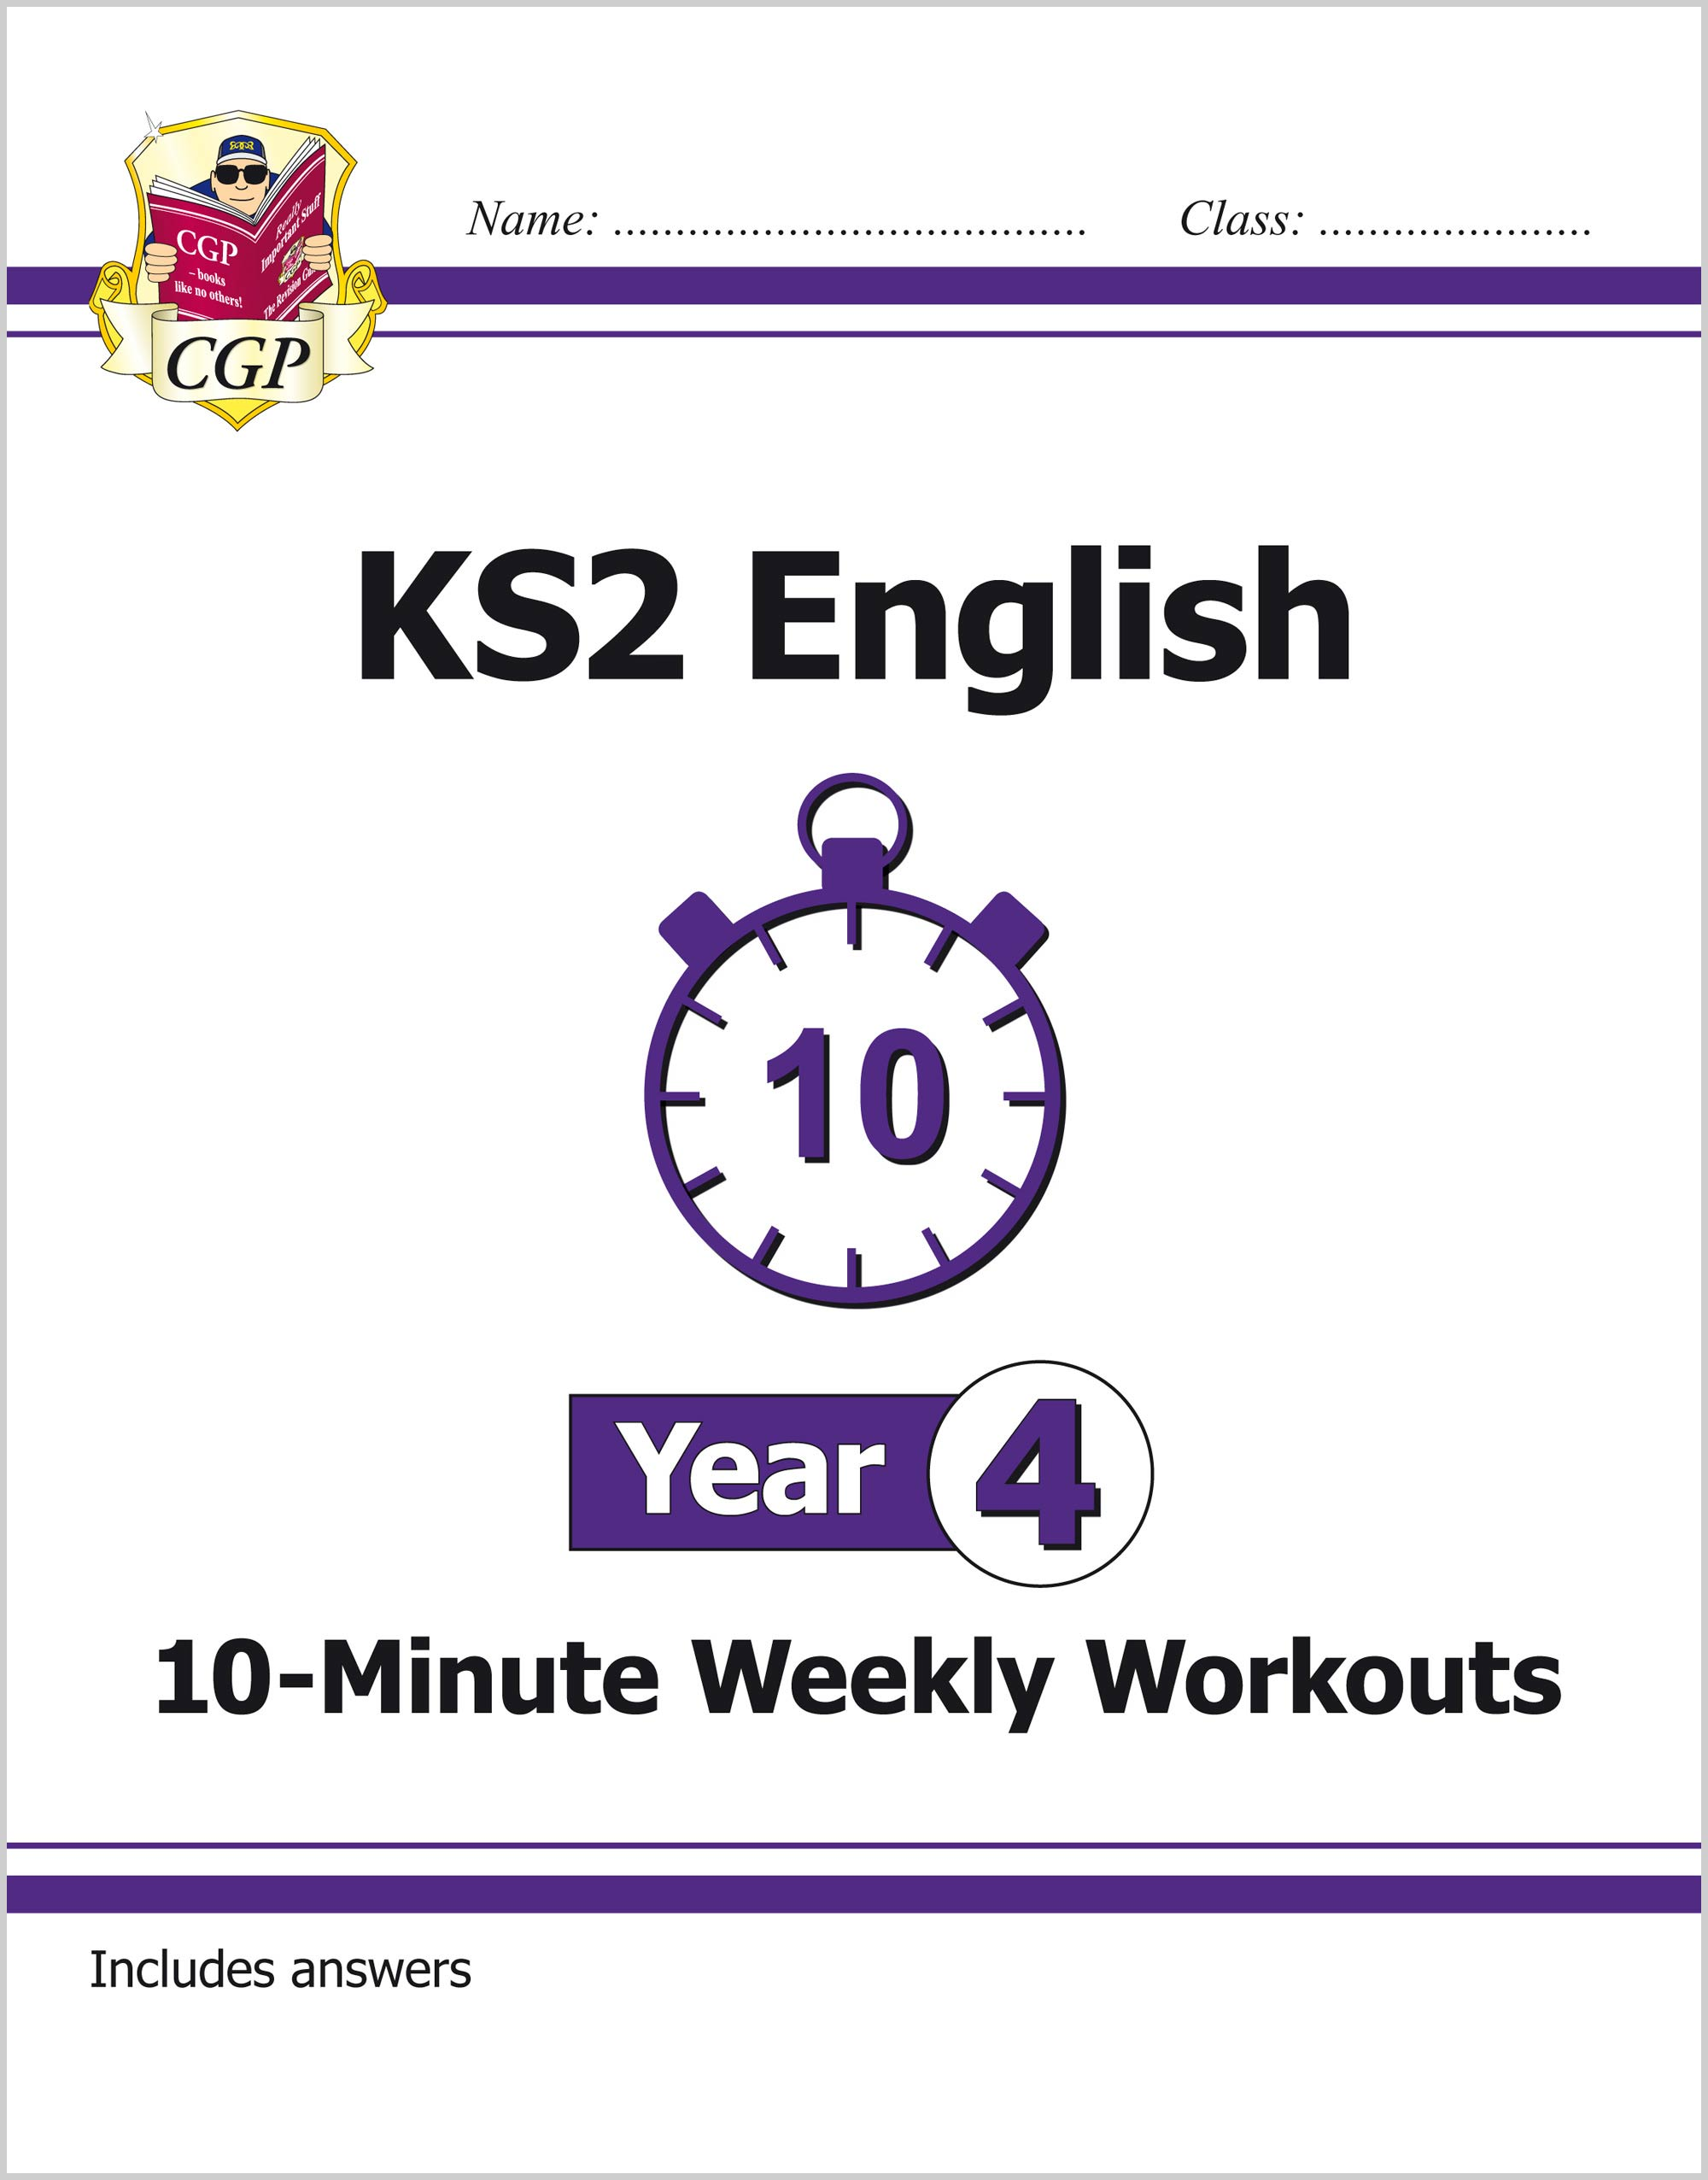 E4XW21 - KS2 English 10-Minute Weekly Workouts - Year 4